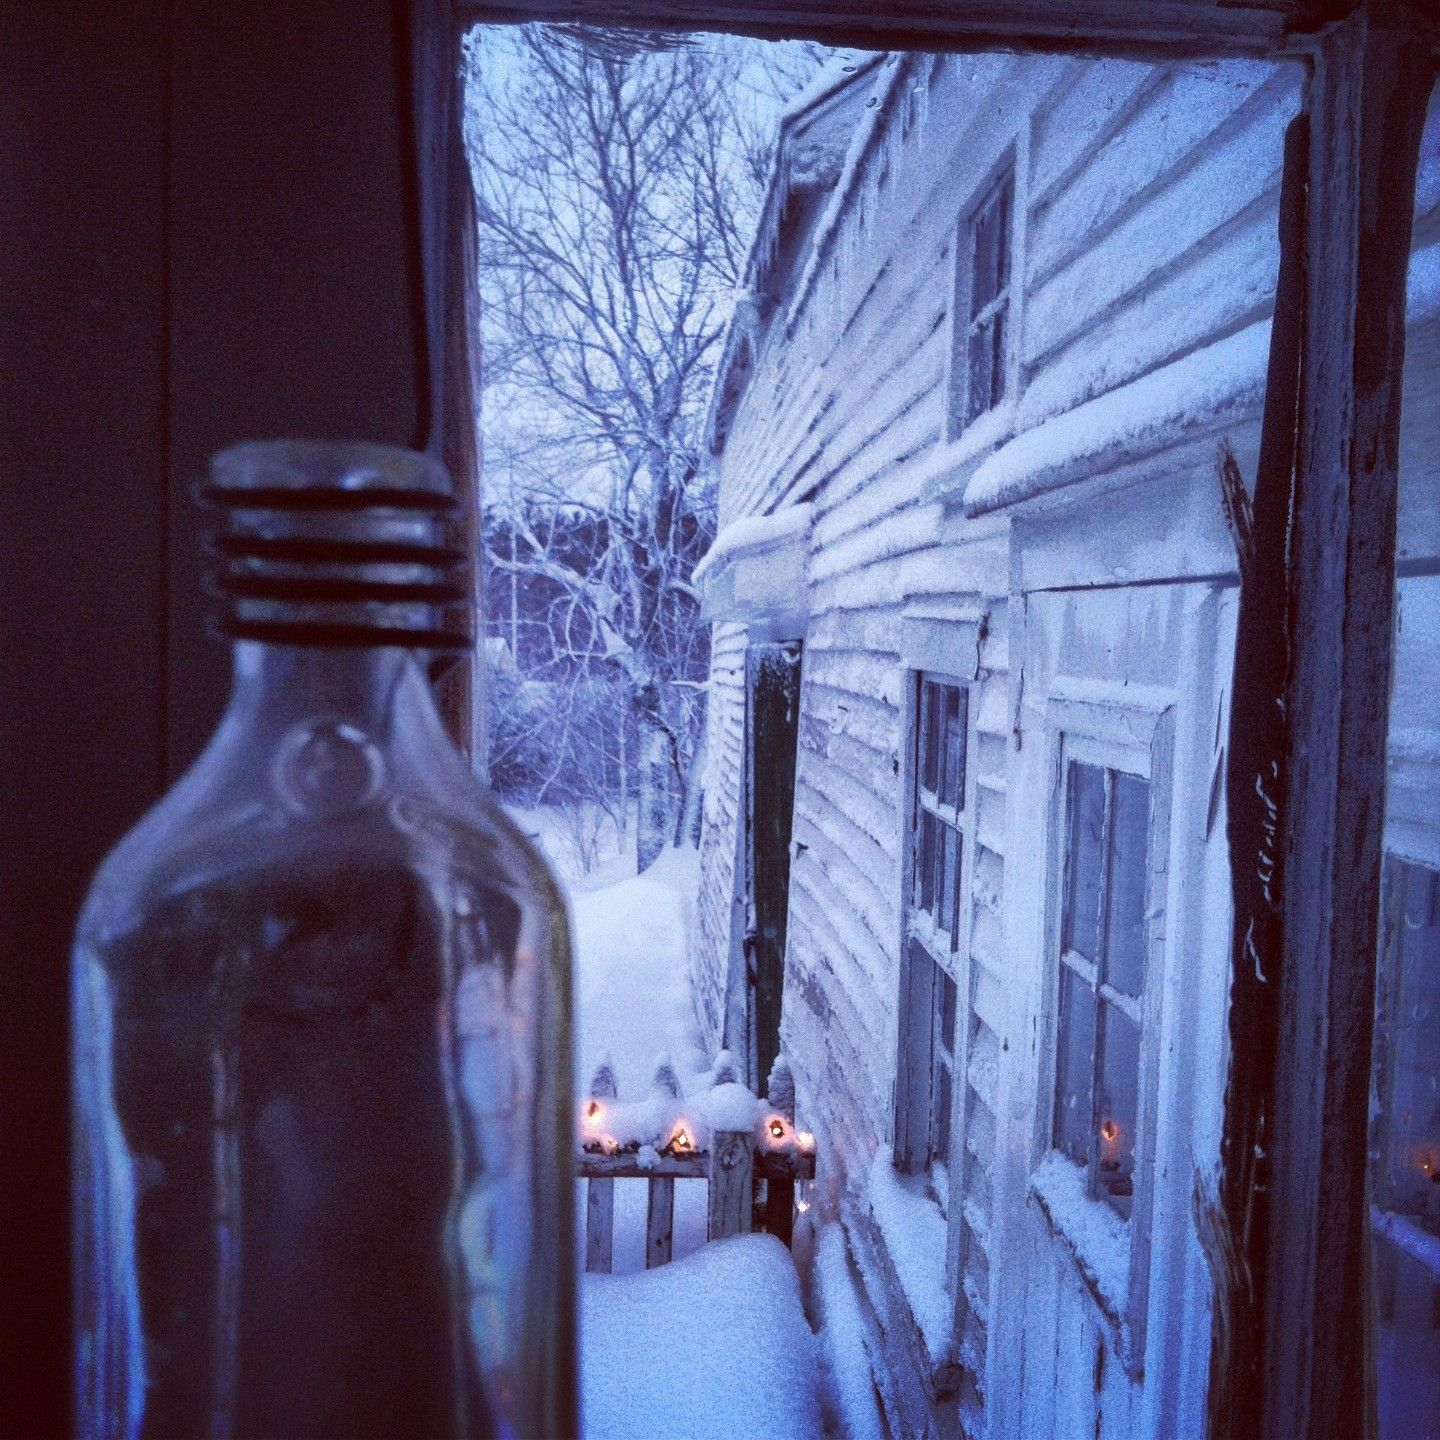 Brisk Winter Morning said the Barn to the Bottle.